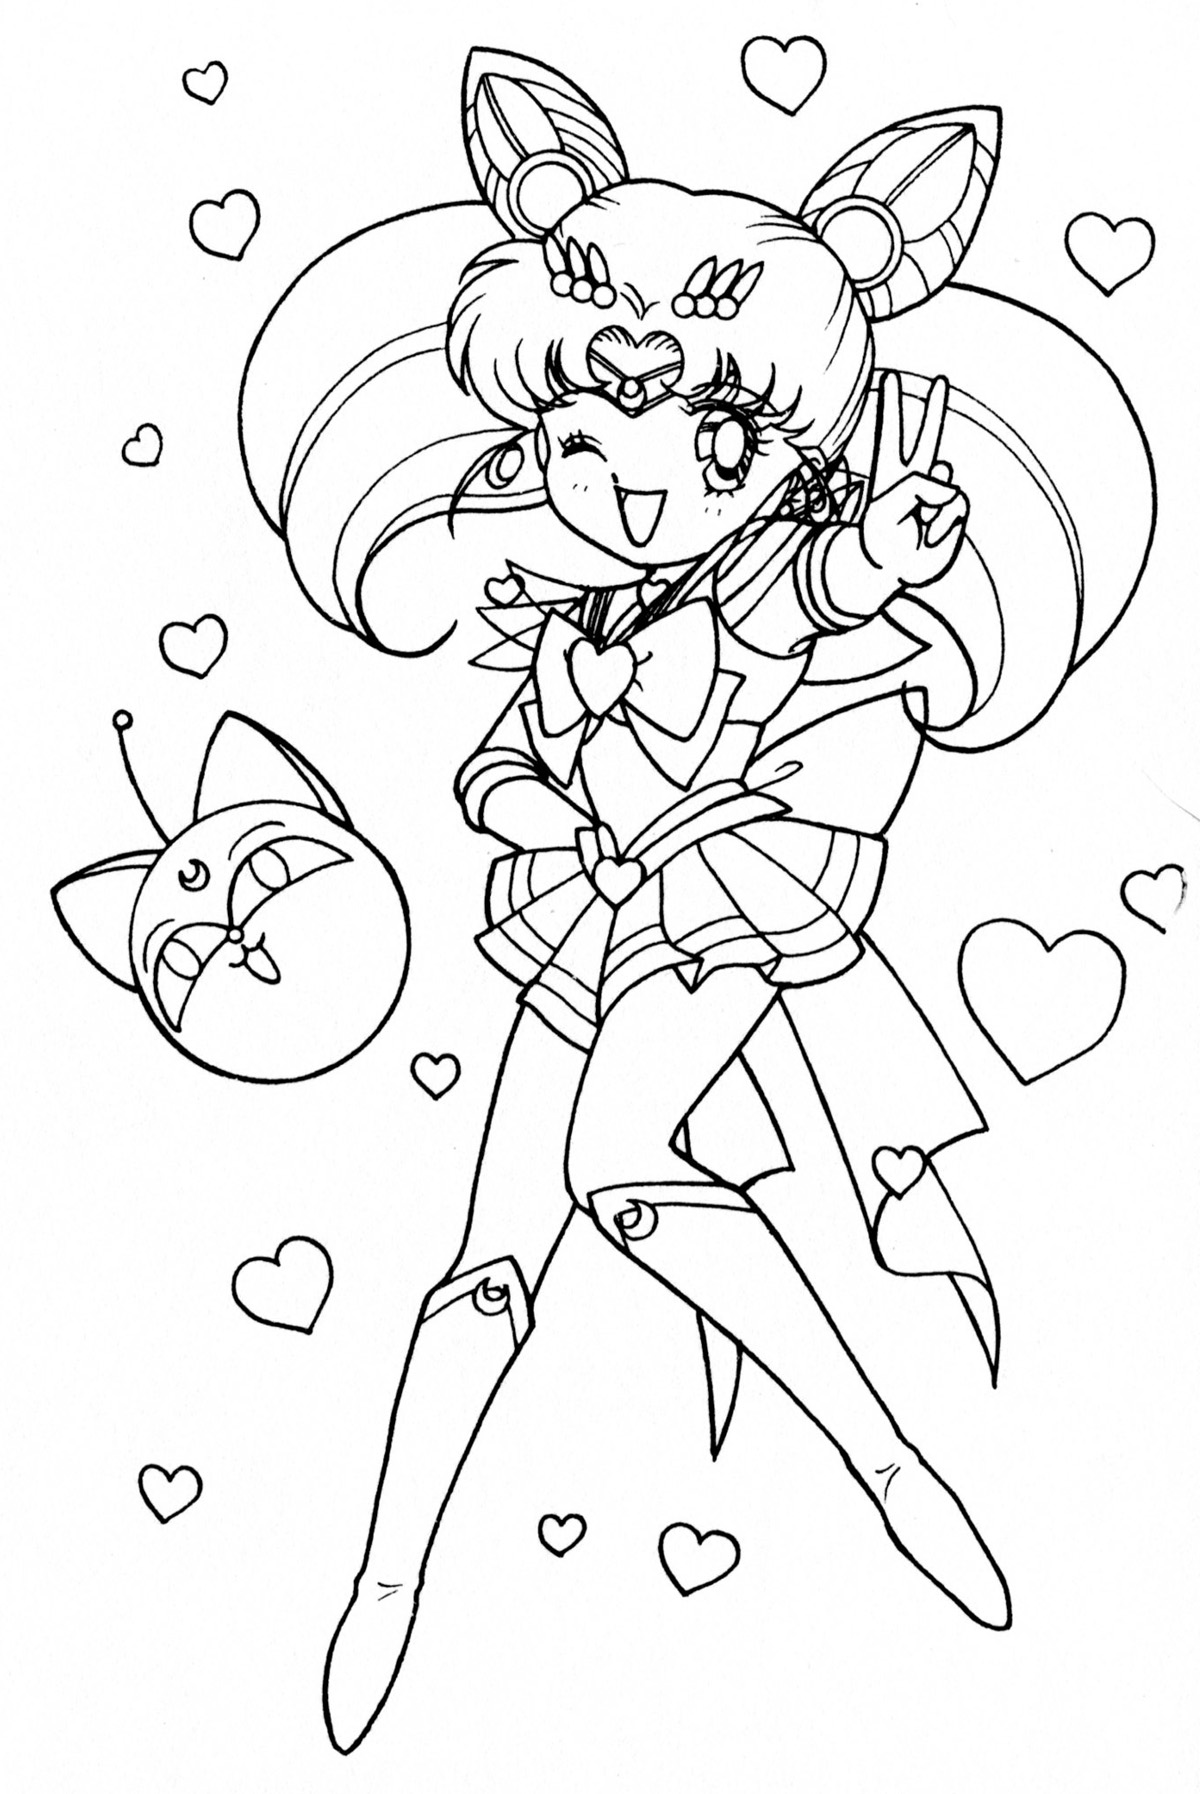 sailor moon title coloring page google search coloring pages